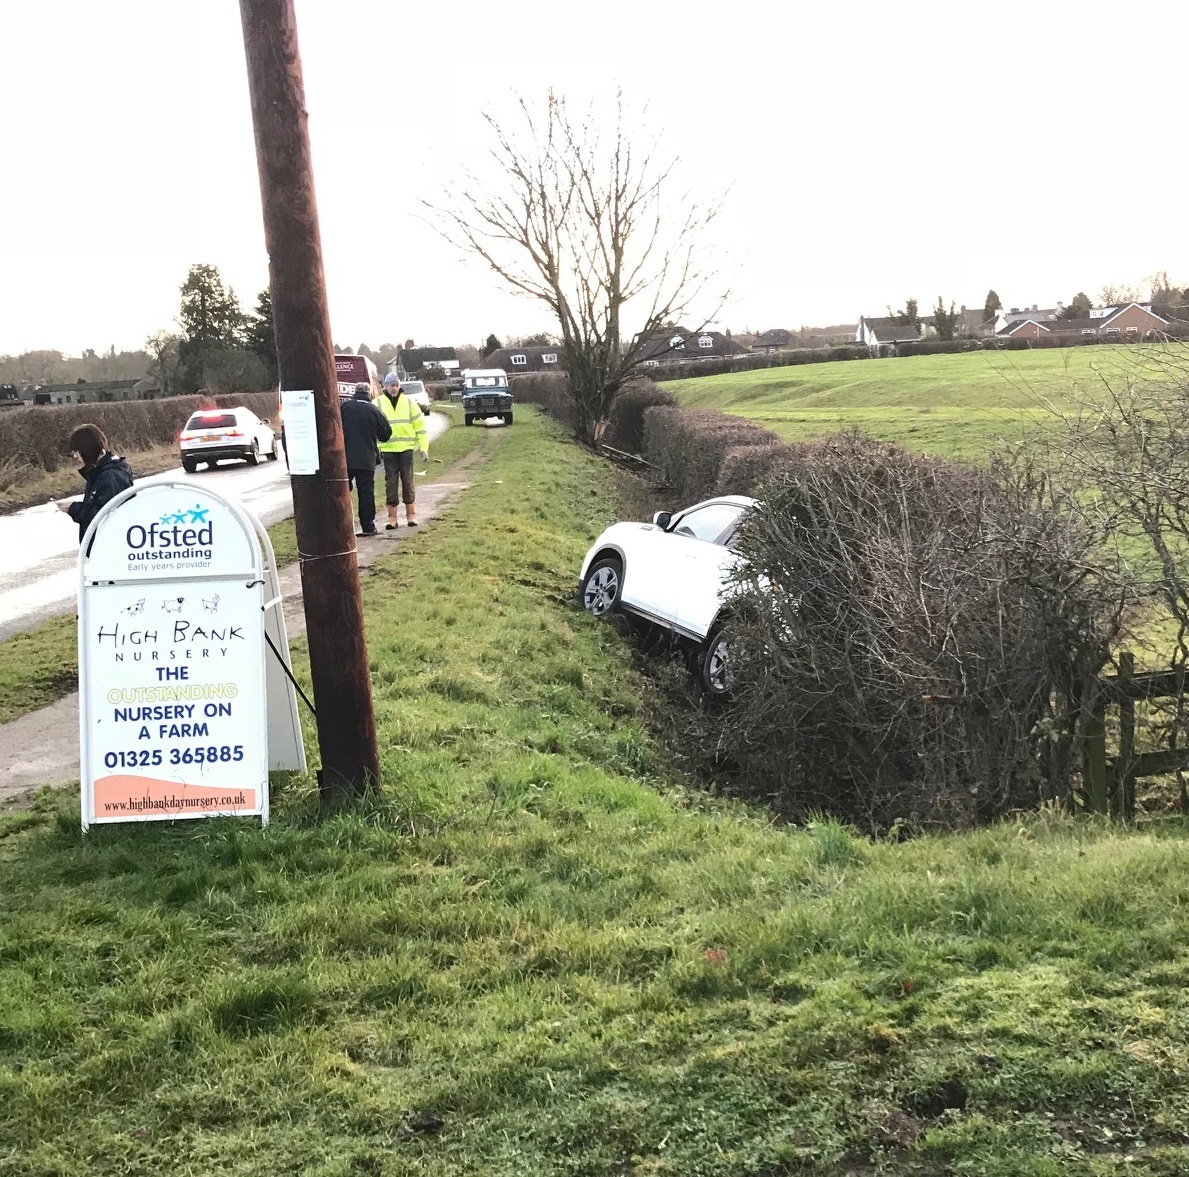 Anger after crashes on road near village nursery